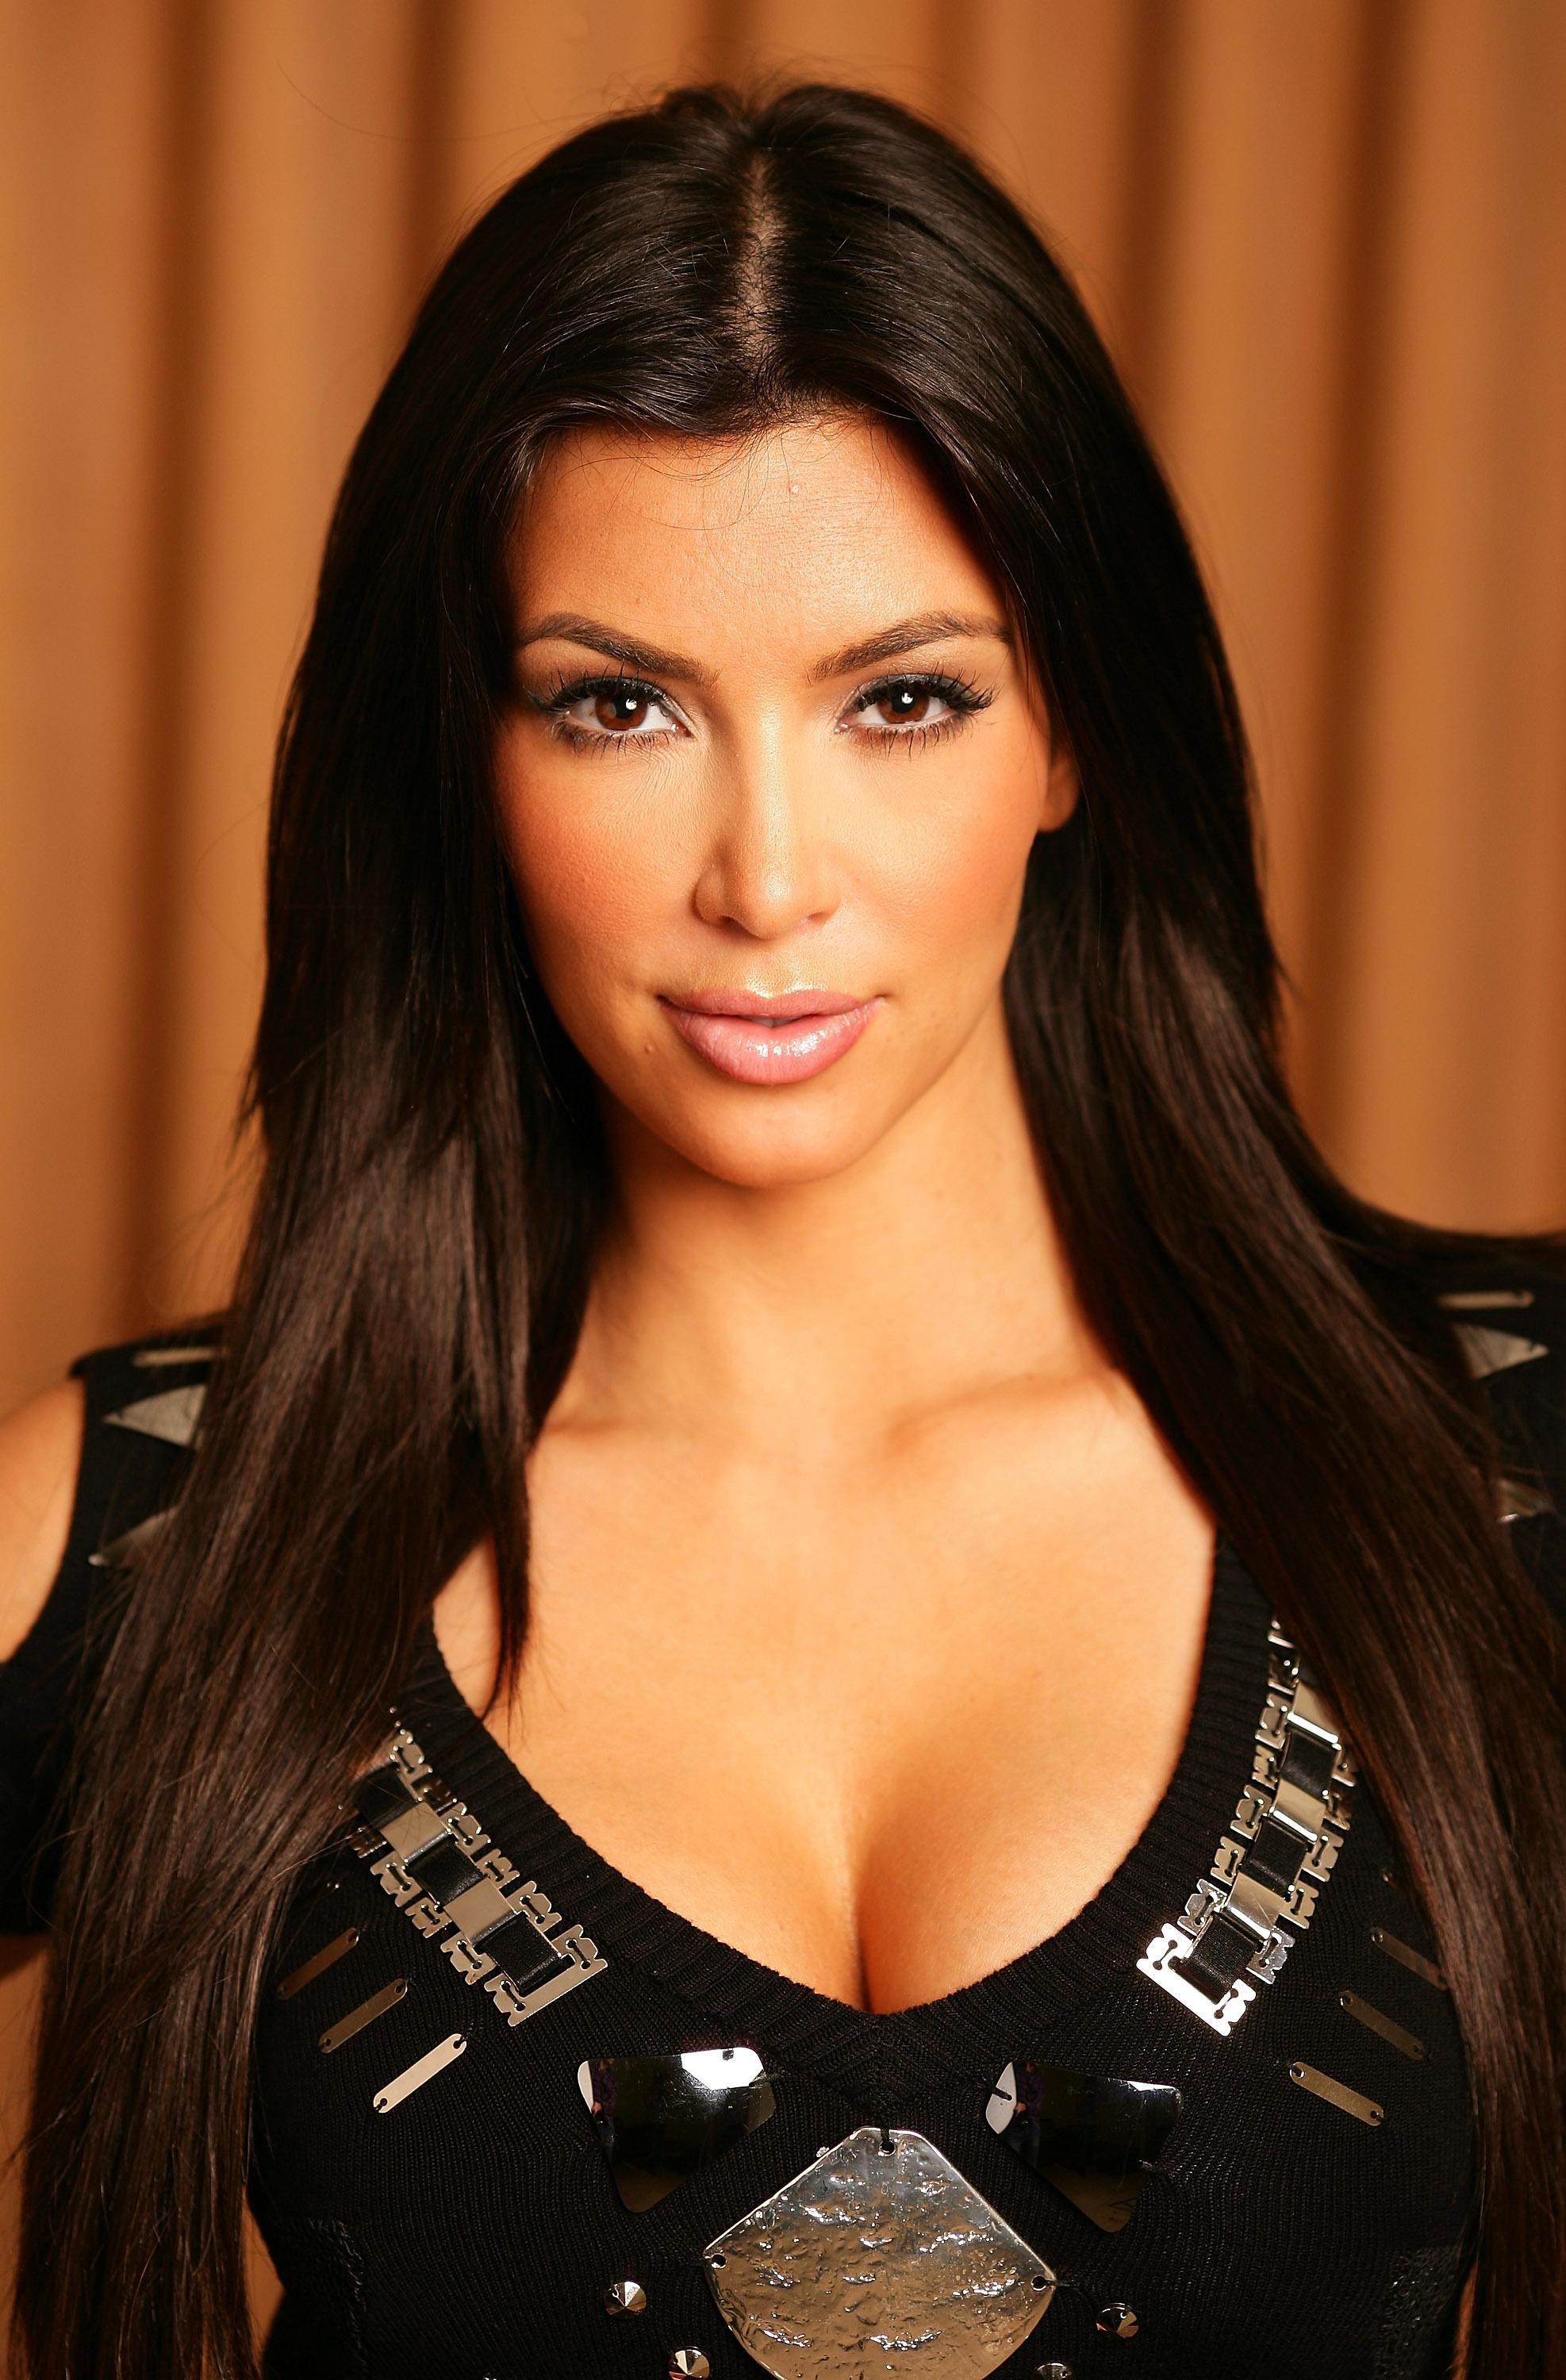 74686_Kim_Kardashian_portait_session_sydney_4_122_382lo.jpg